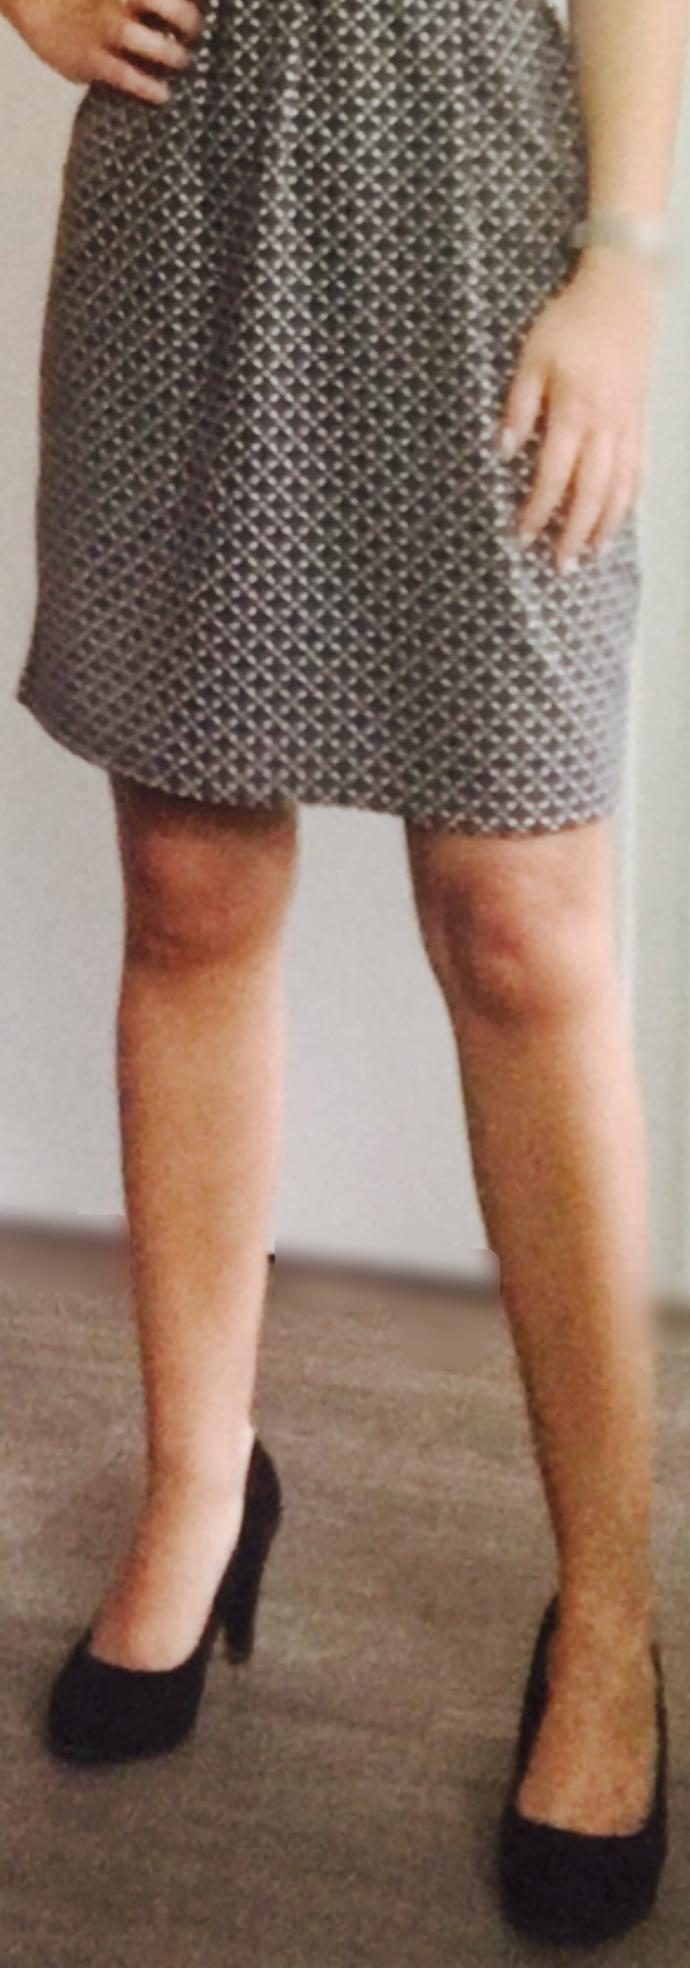 What do you think of that skirt? Is it too old-fashioned?